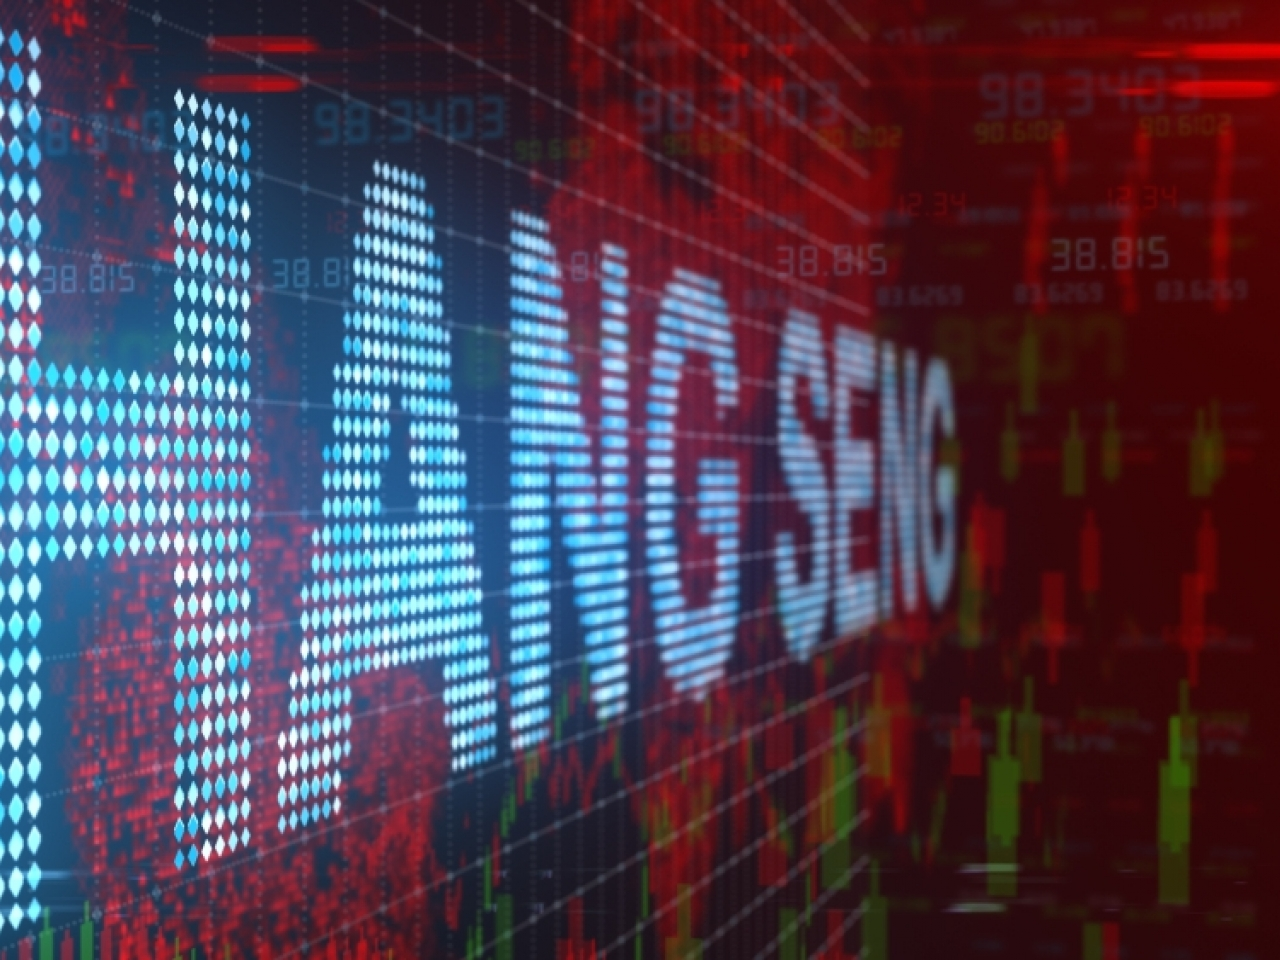 The Hang Seng index posted losses for the first day of May. Image: Shutterstock